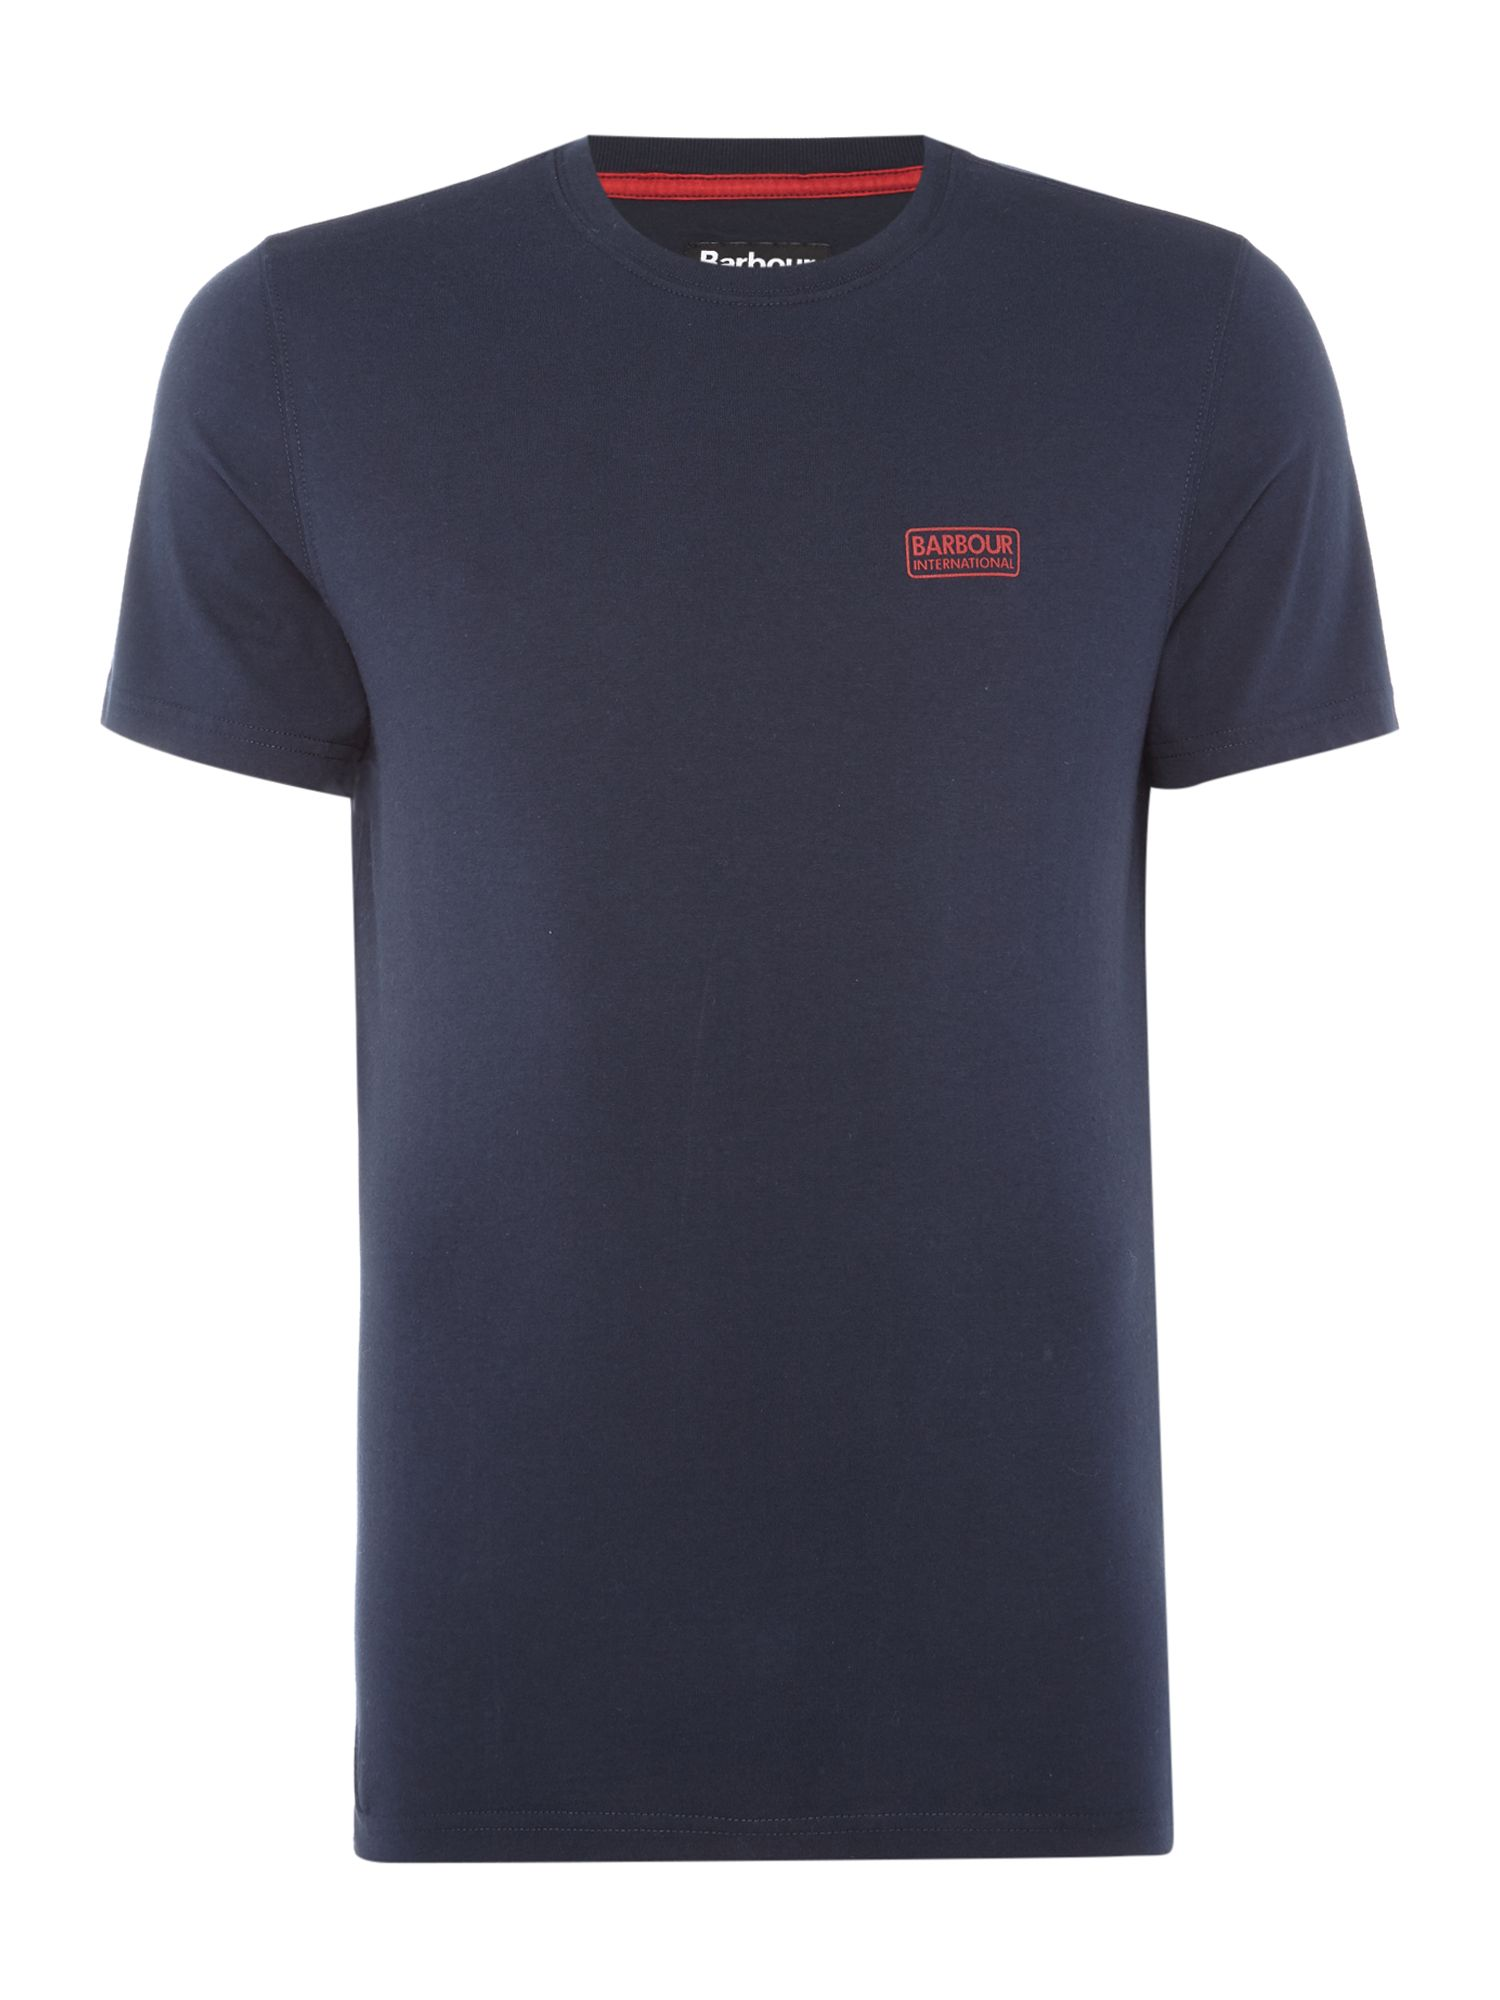 Men's Barbour International small logo T-Shirt, Blue